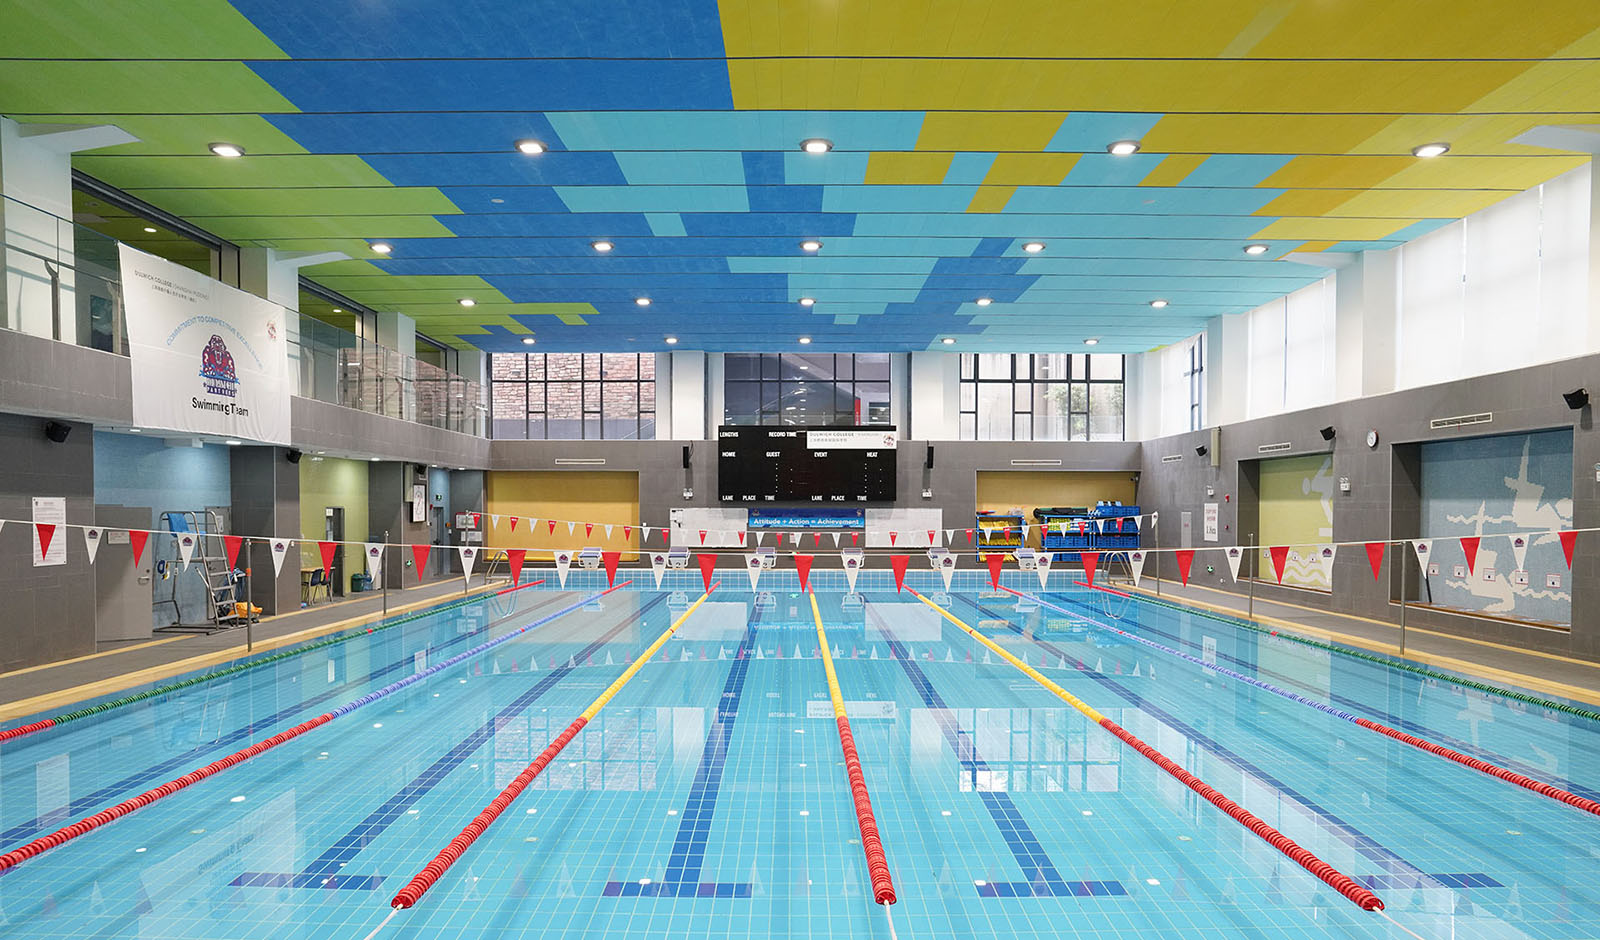 25-meter Olympic size swimming pool at the Dulwich Pudong Sports Centre